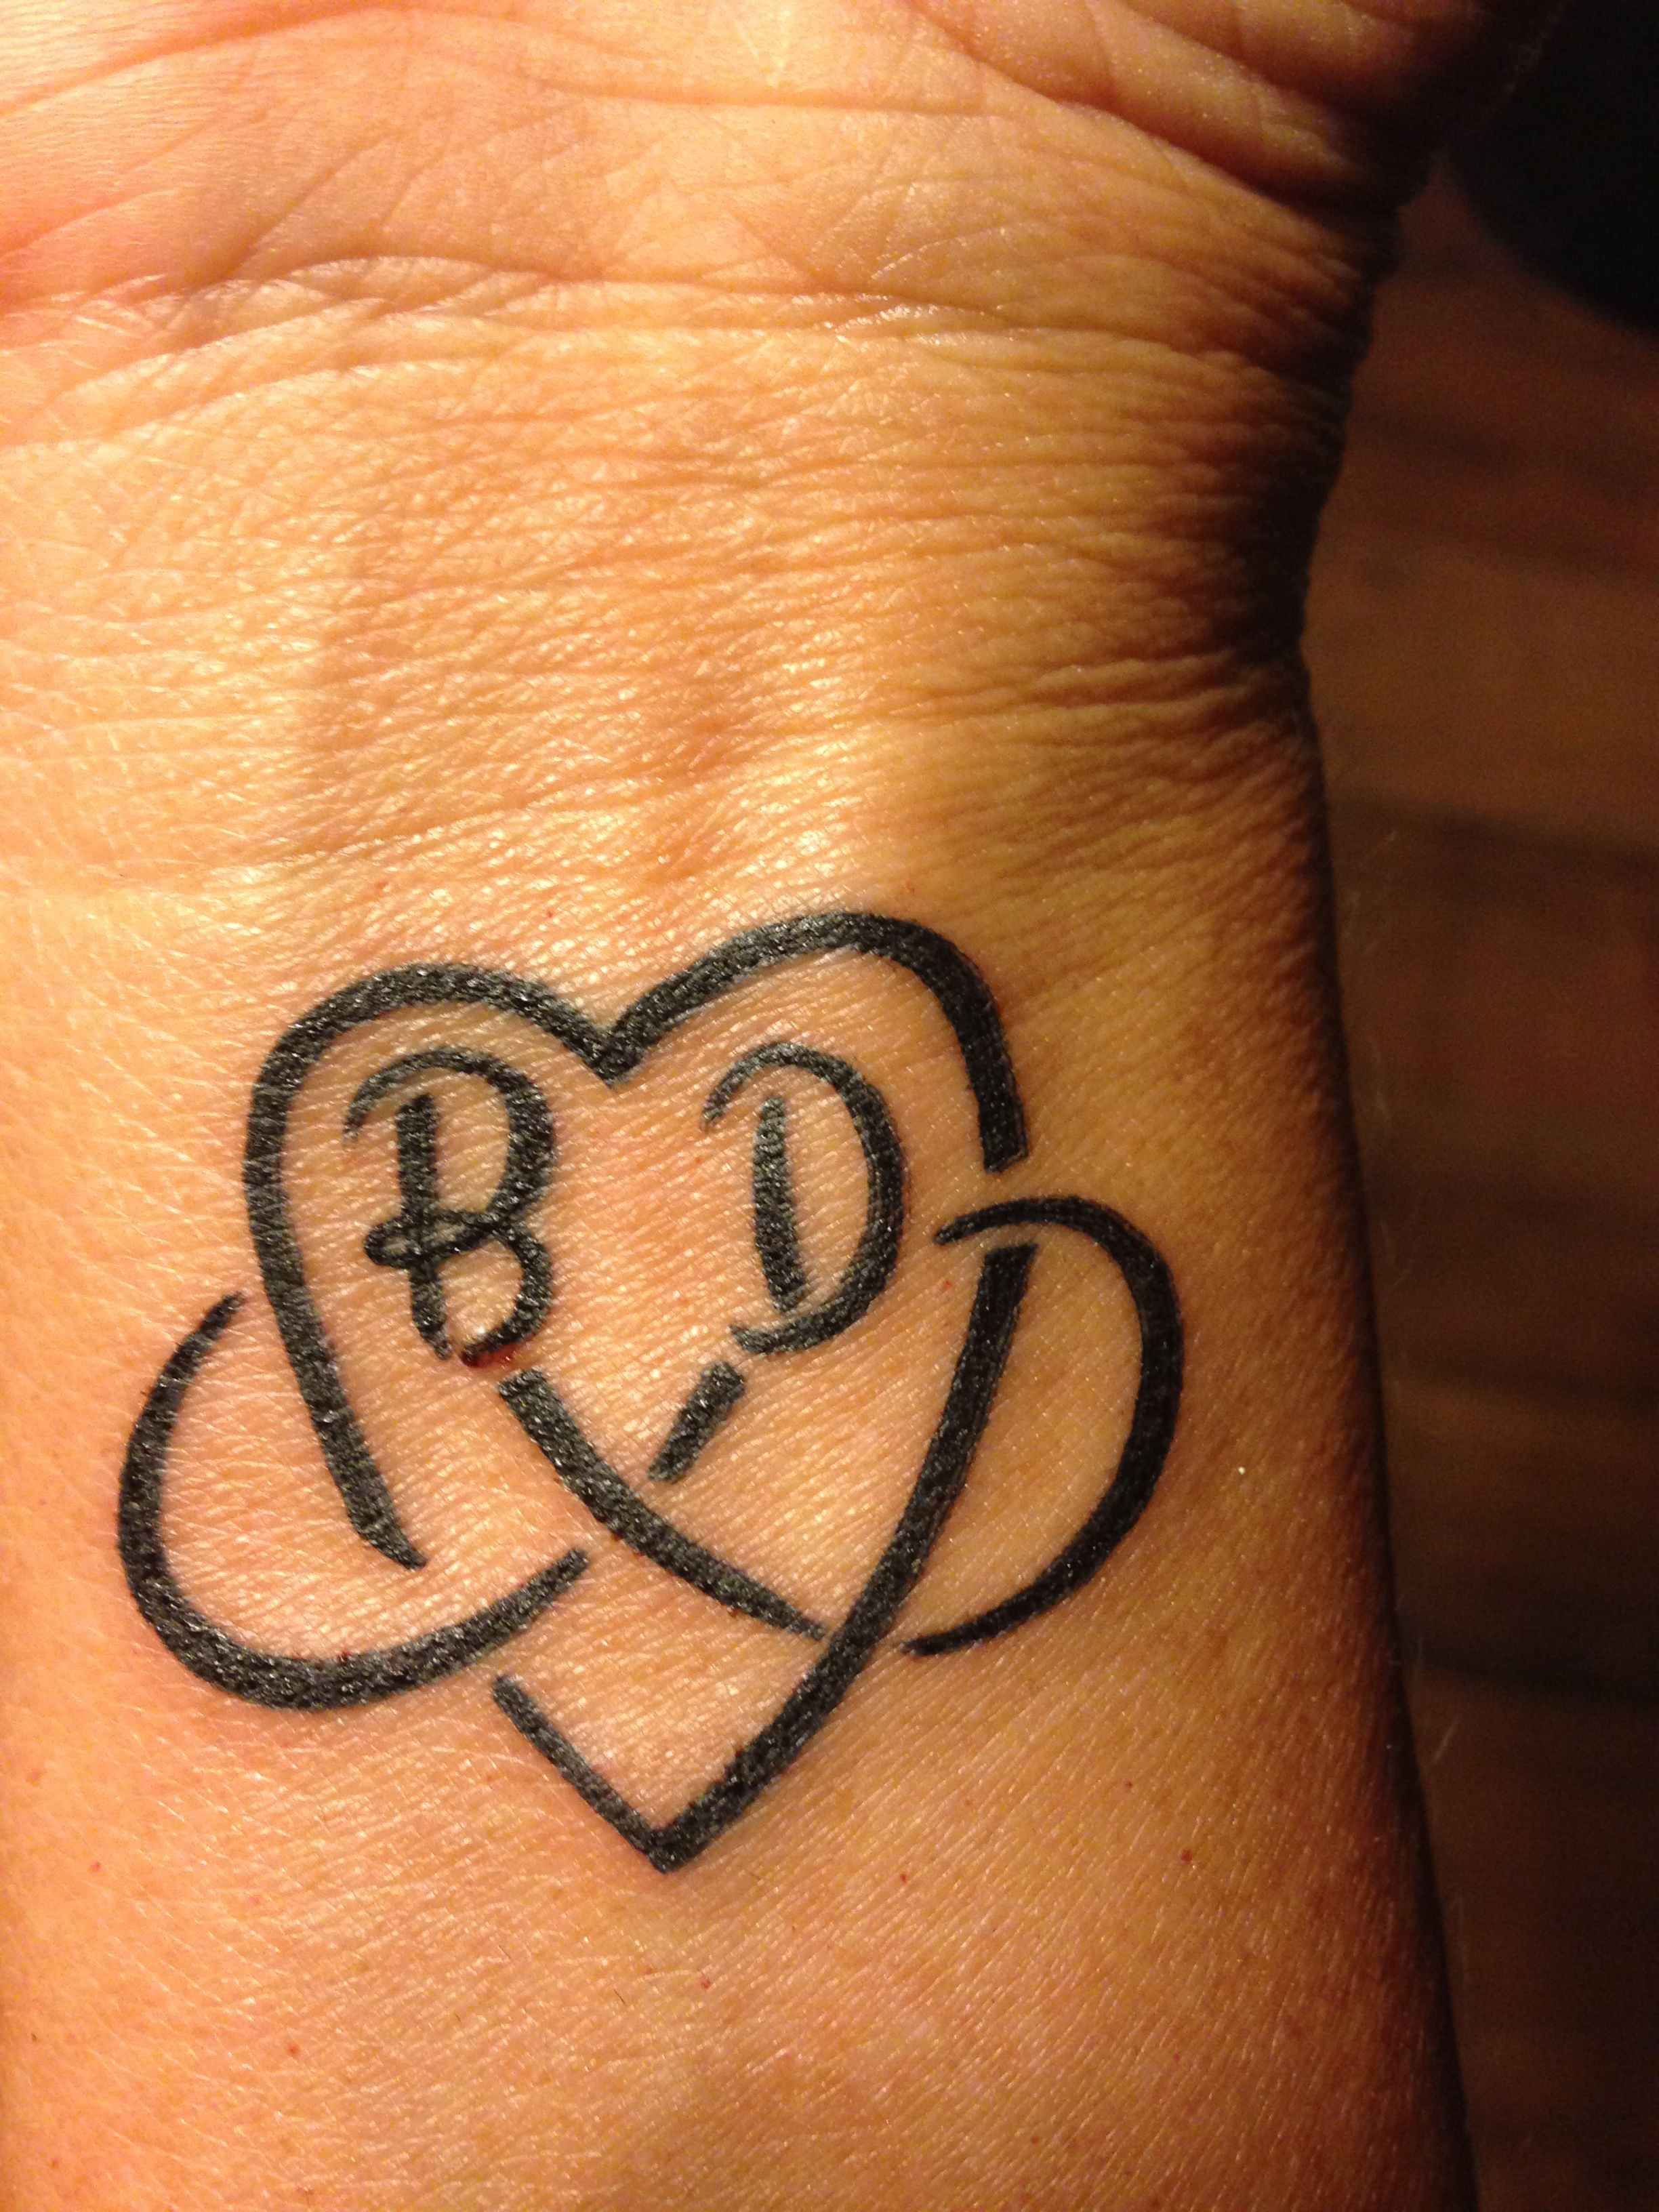 My first tattoo! I love my boys for Infiniti, just a little reminder that I always have them no matter where I go in life!